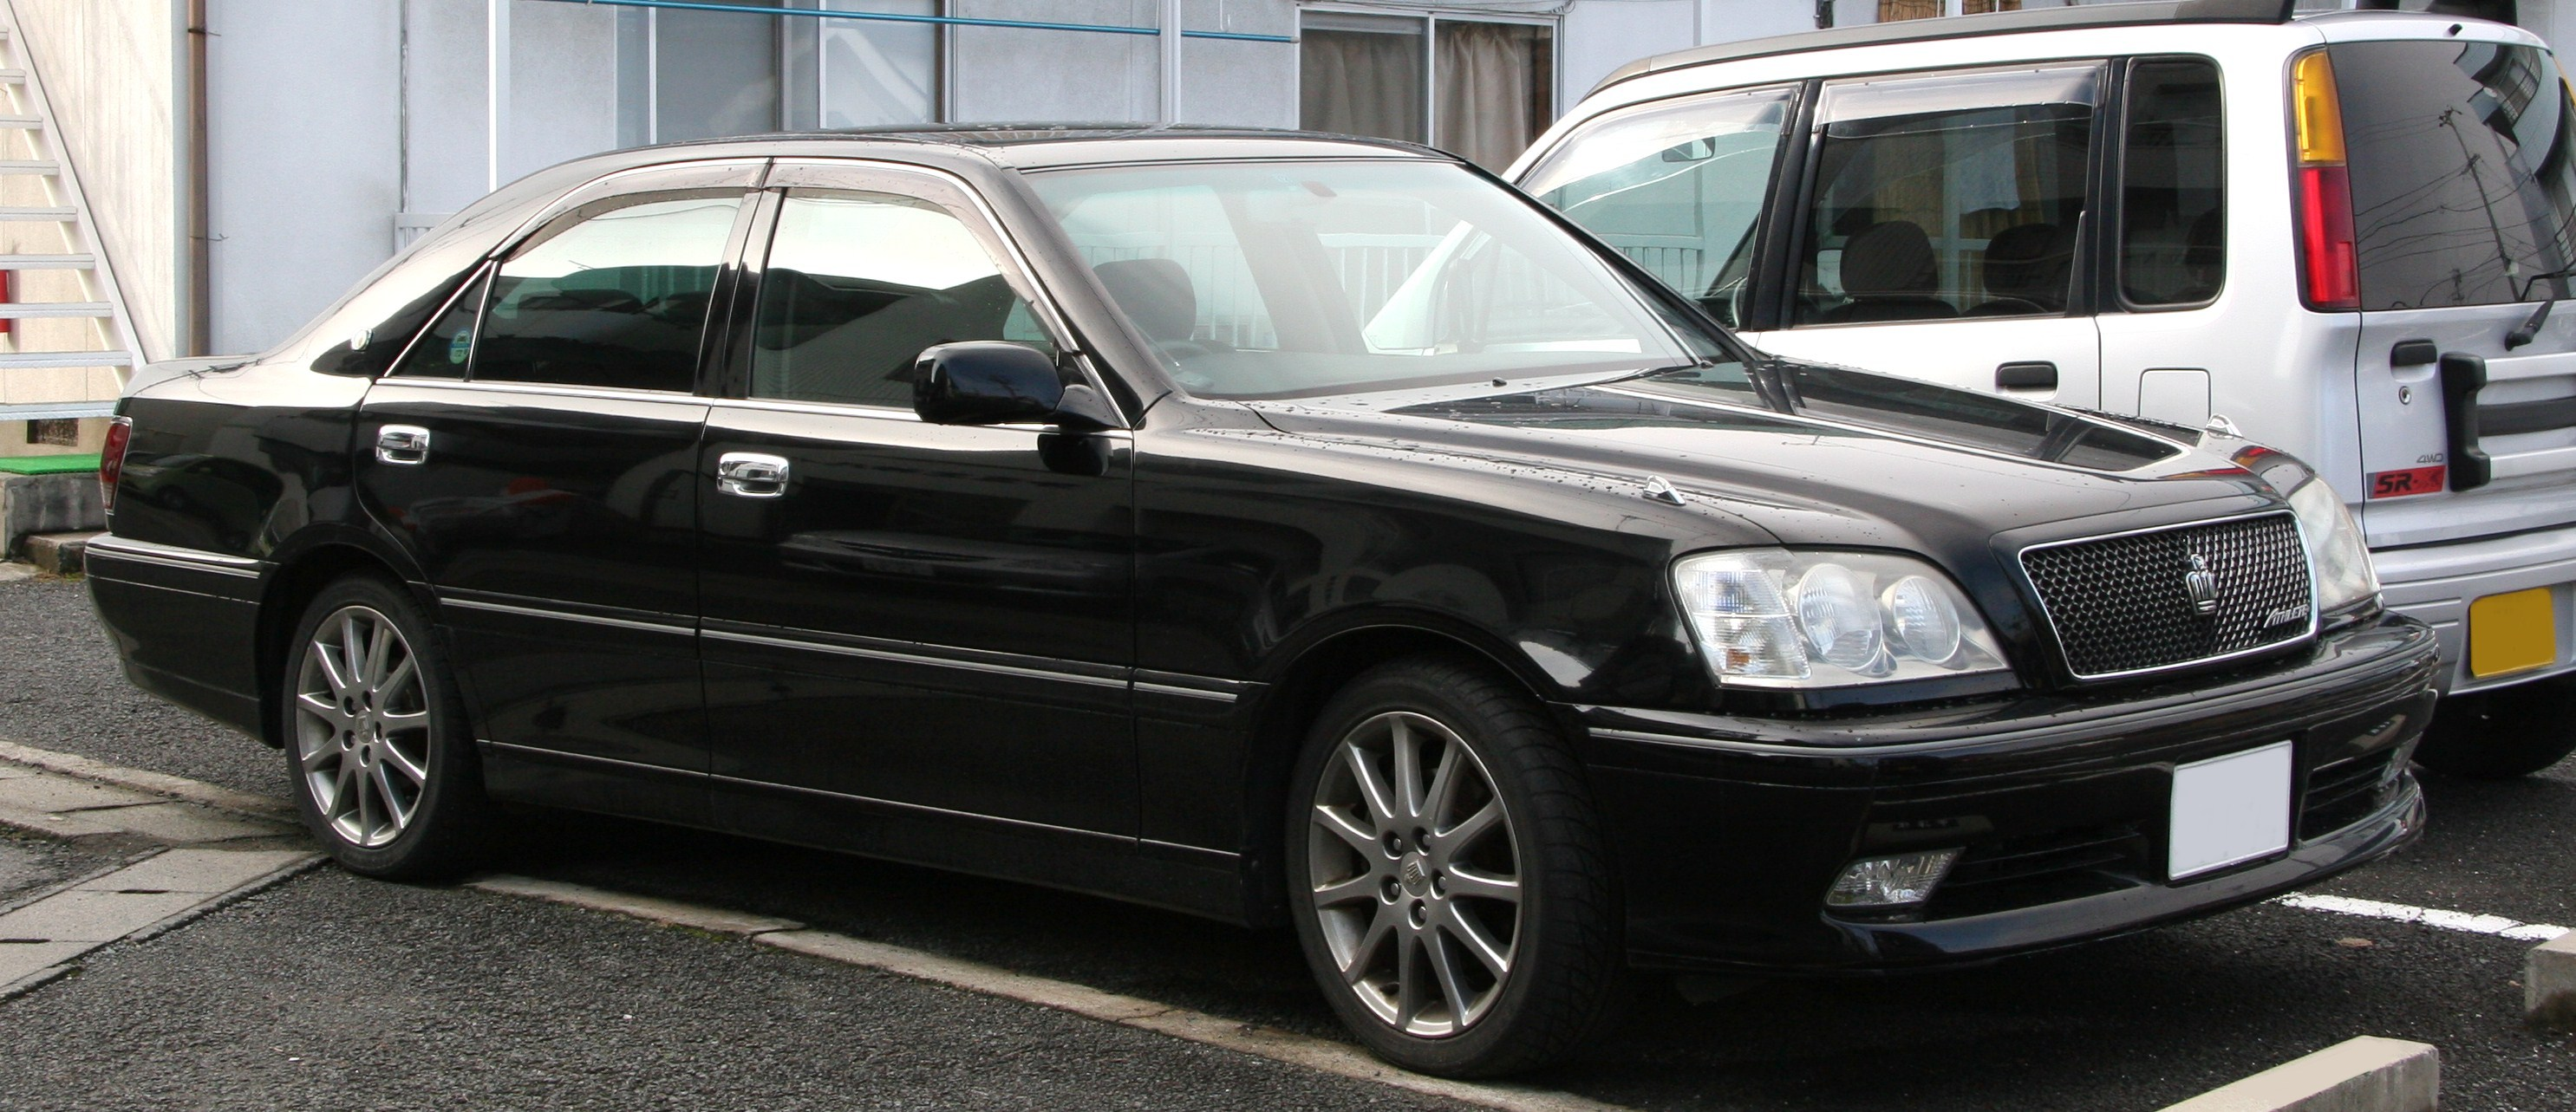 toyota crown athlete v 2003